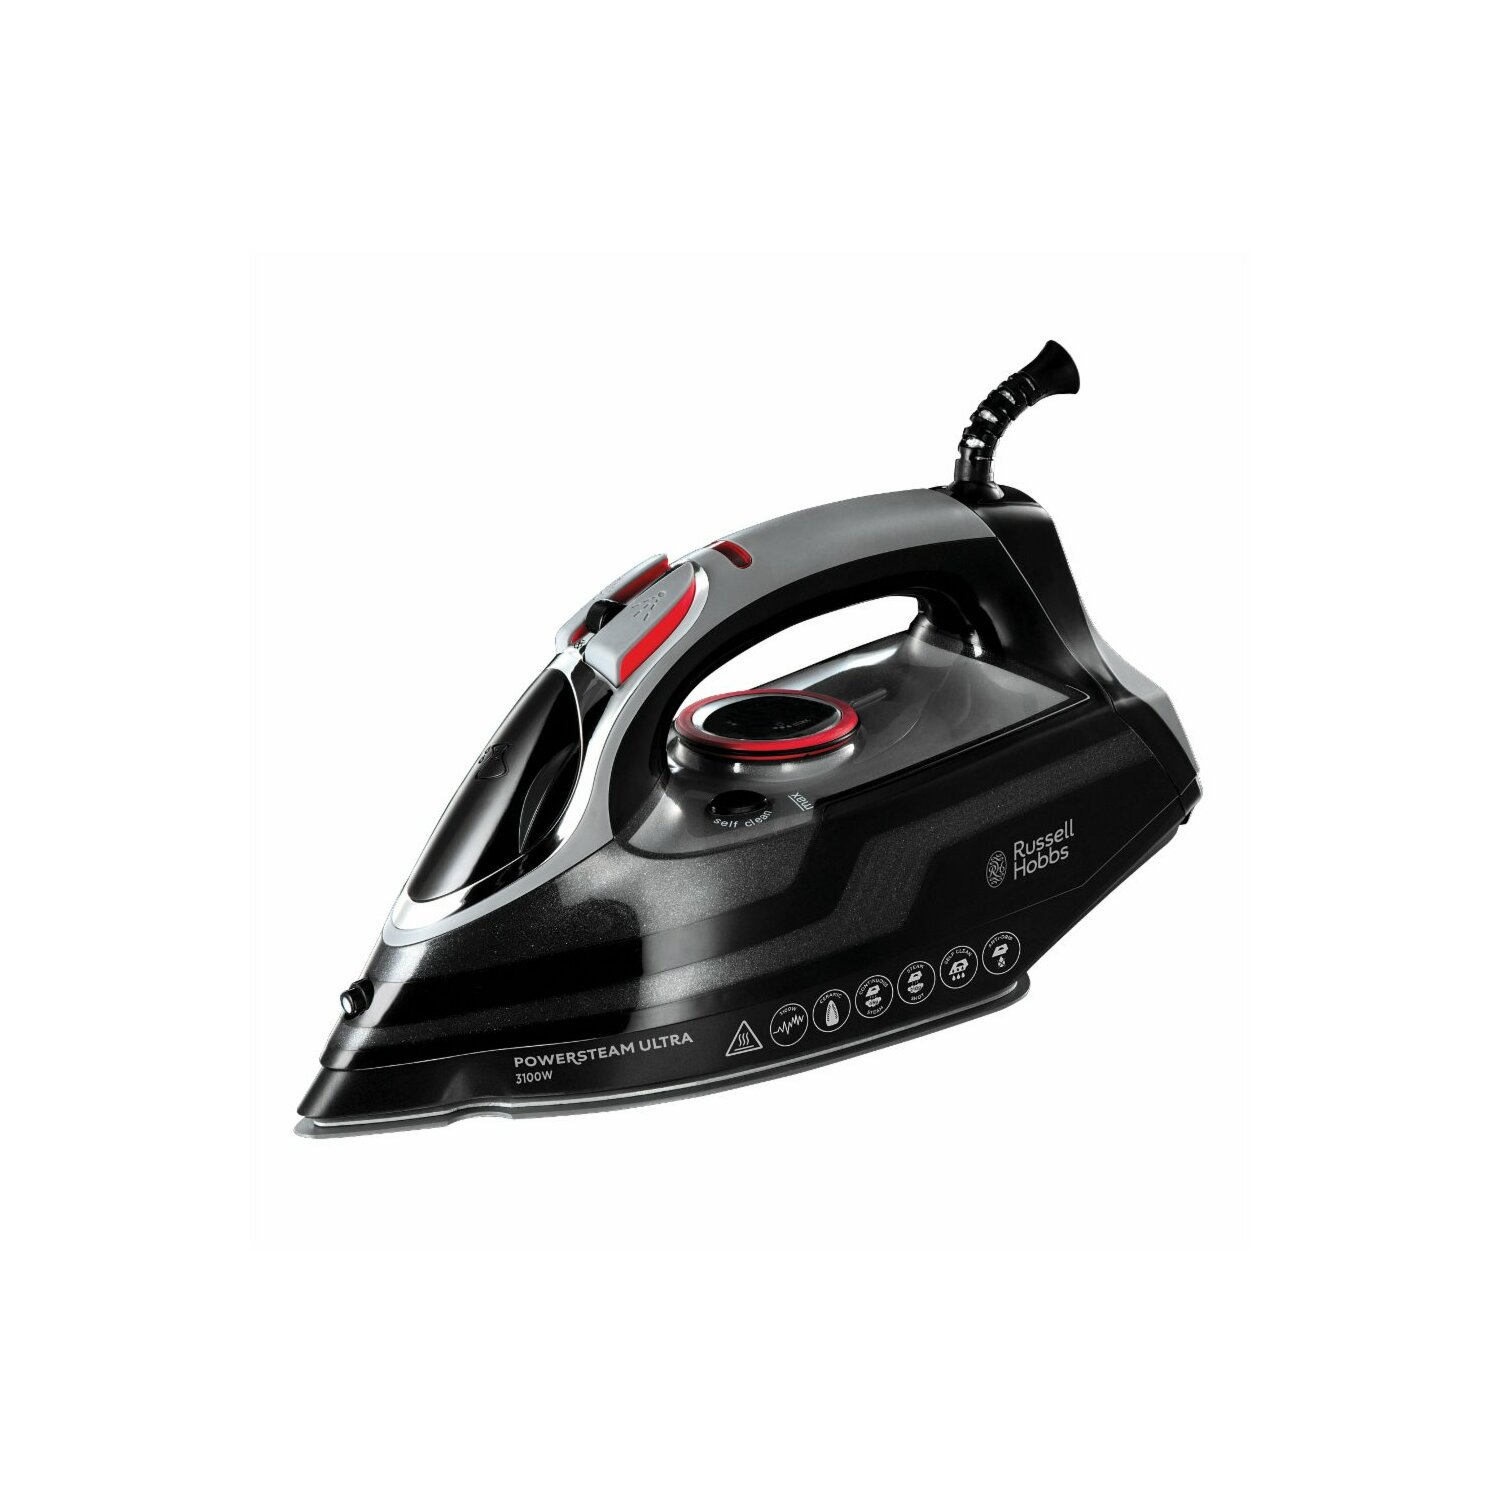 Żelazko RUSSELL HOBBS Power Steam Ultra 20630-56